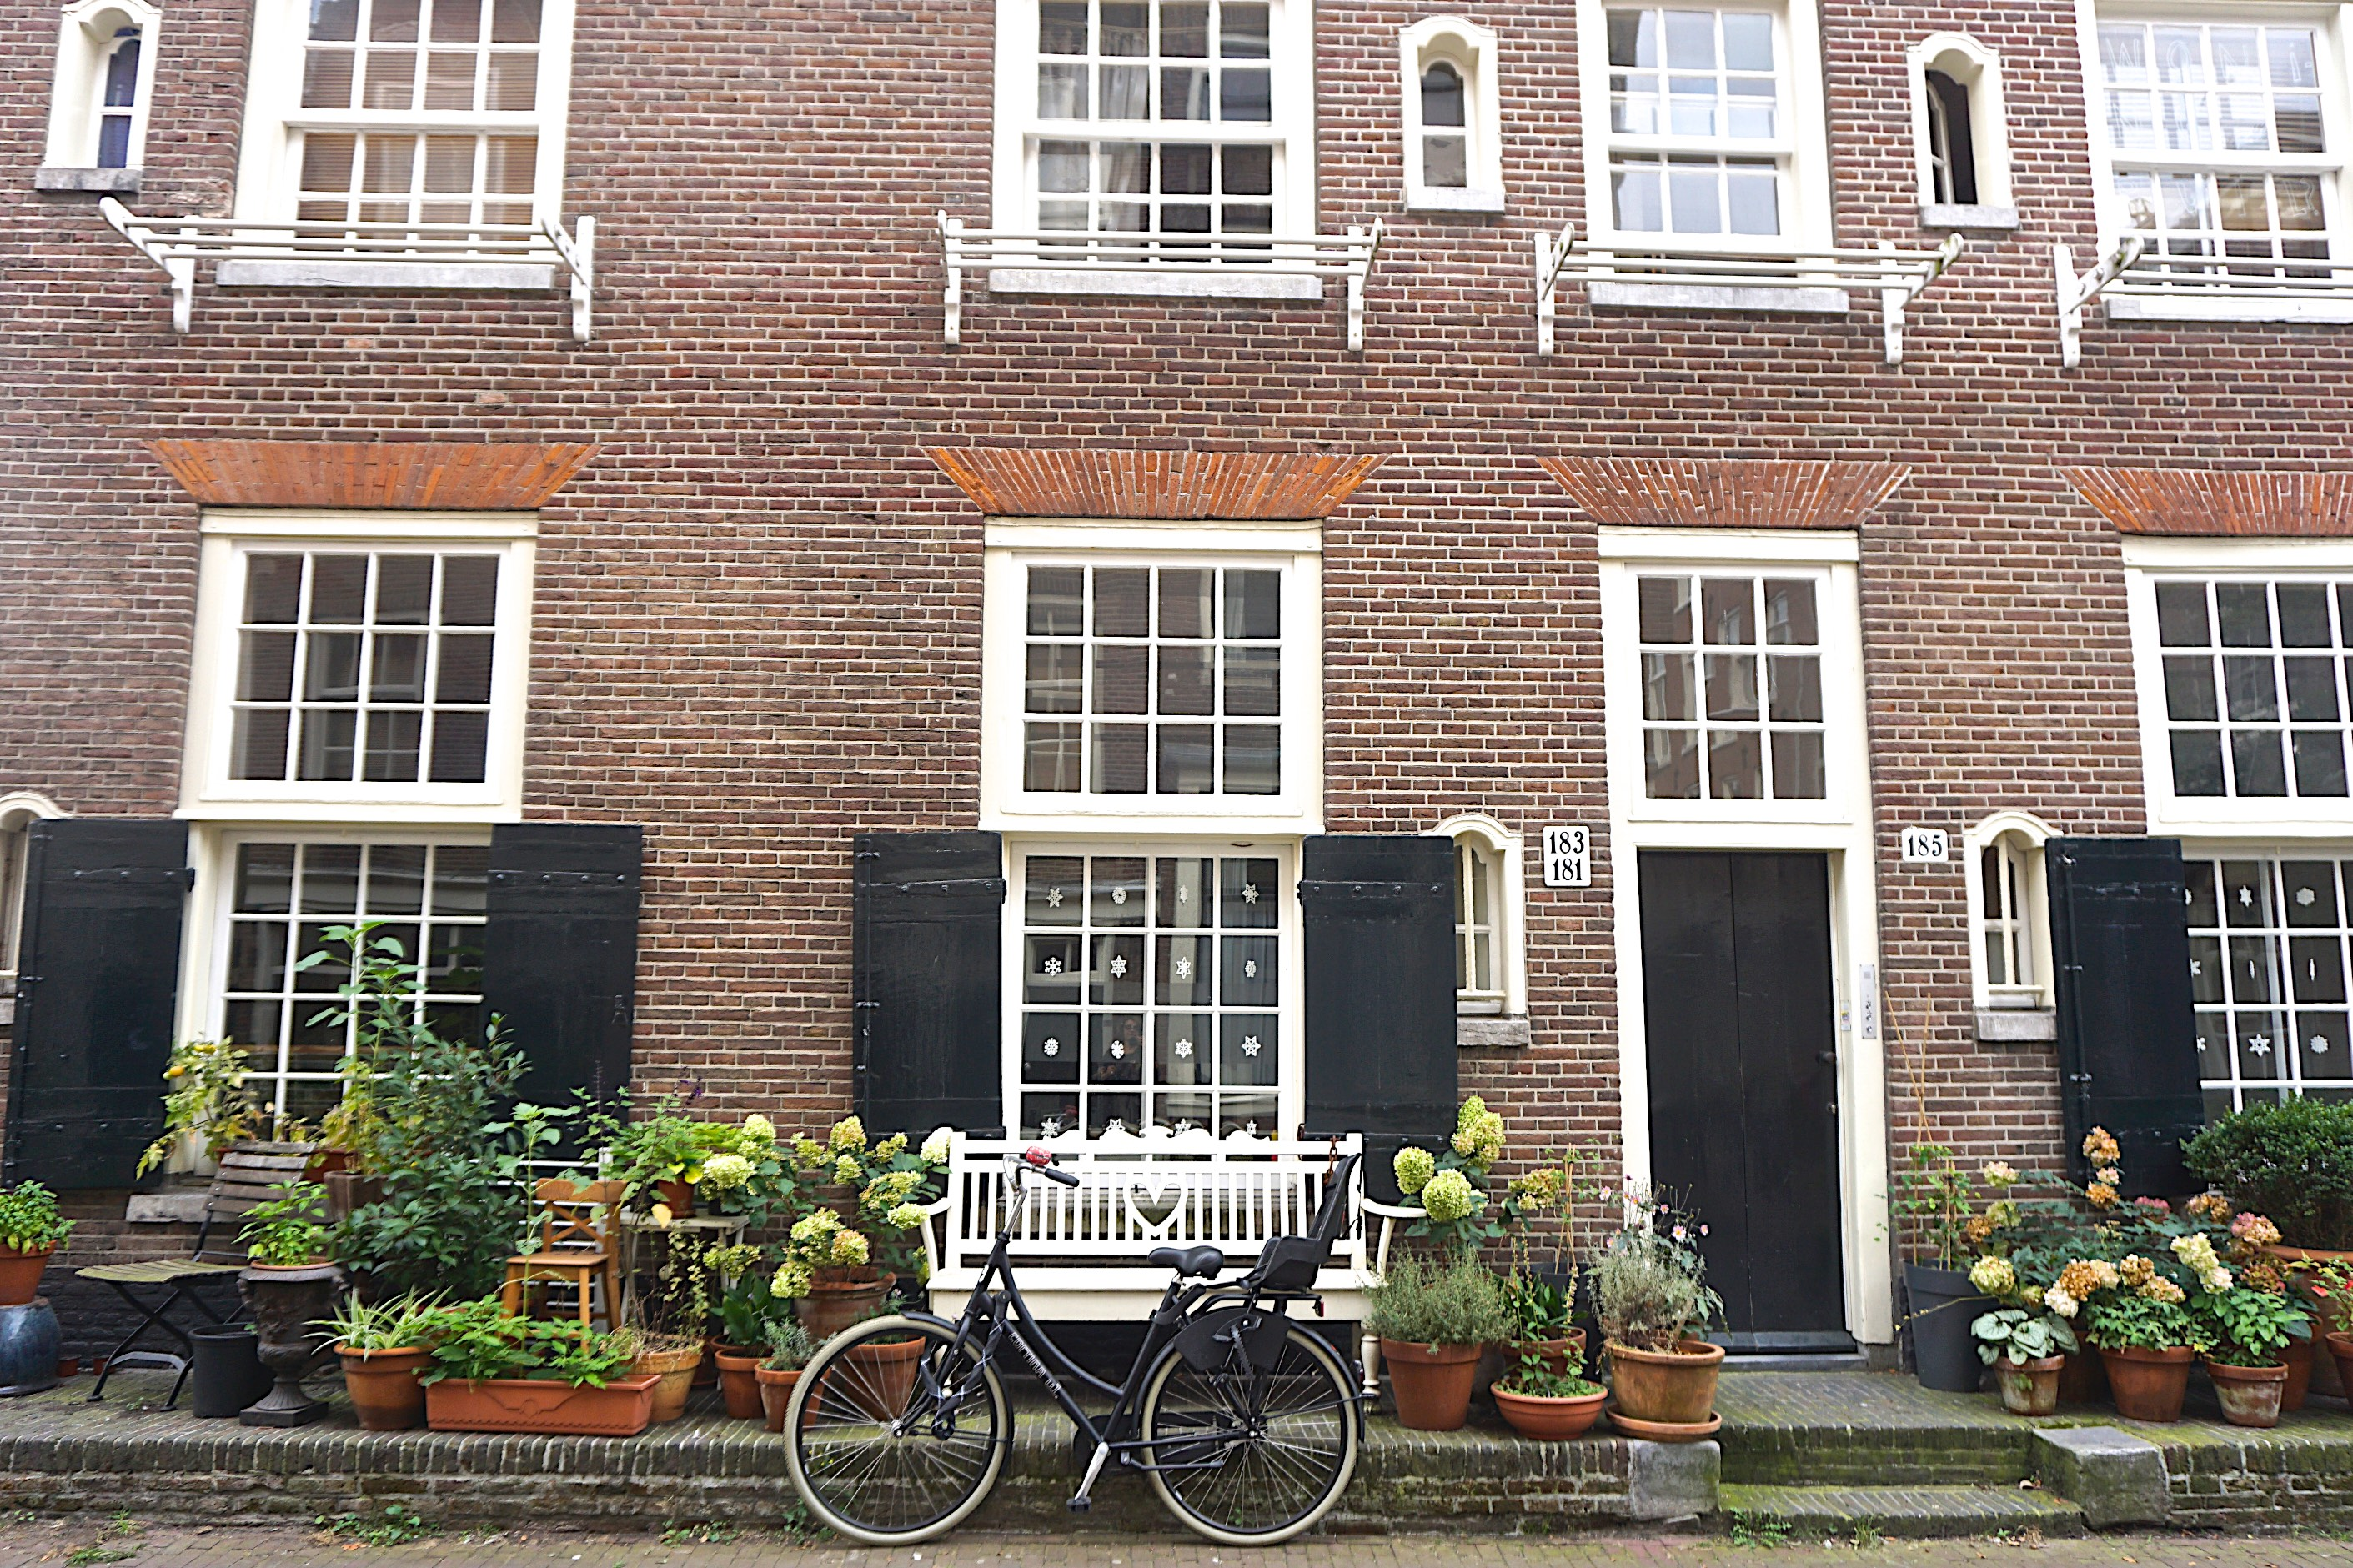 Side street in the Jordaan, Amsterdam